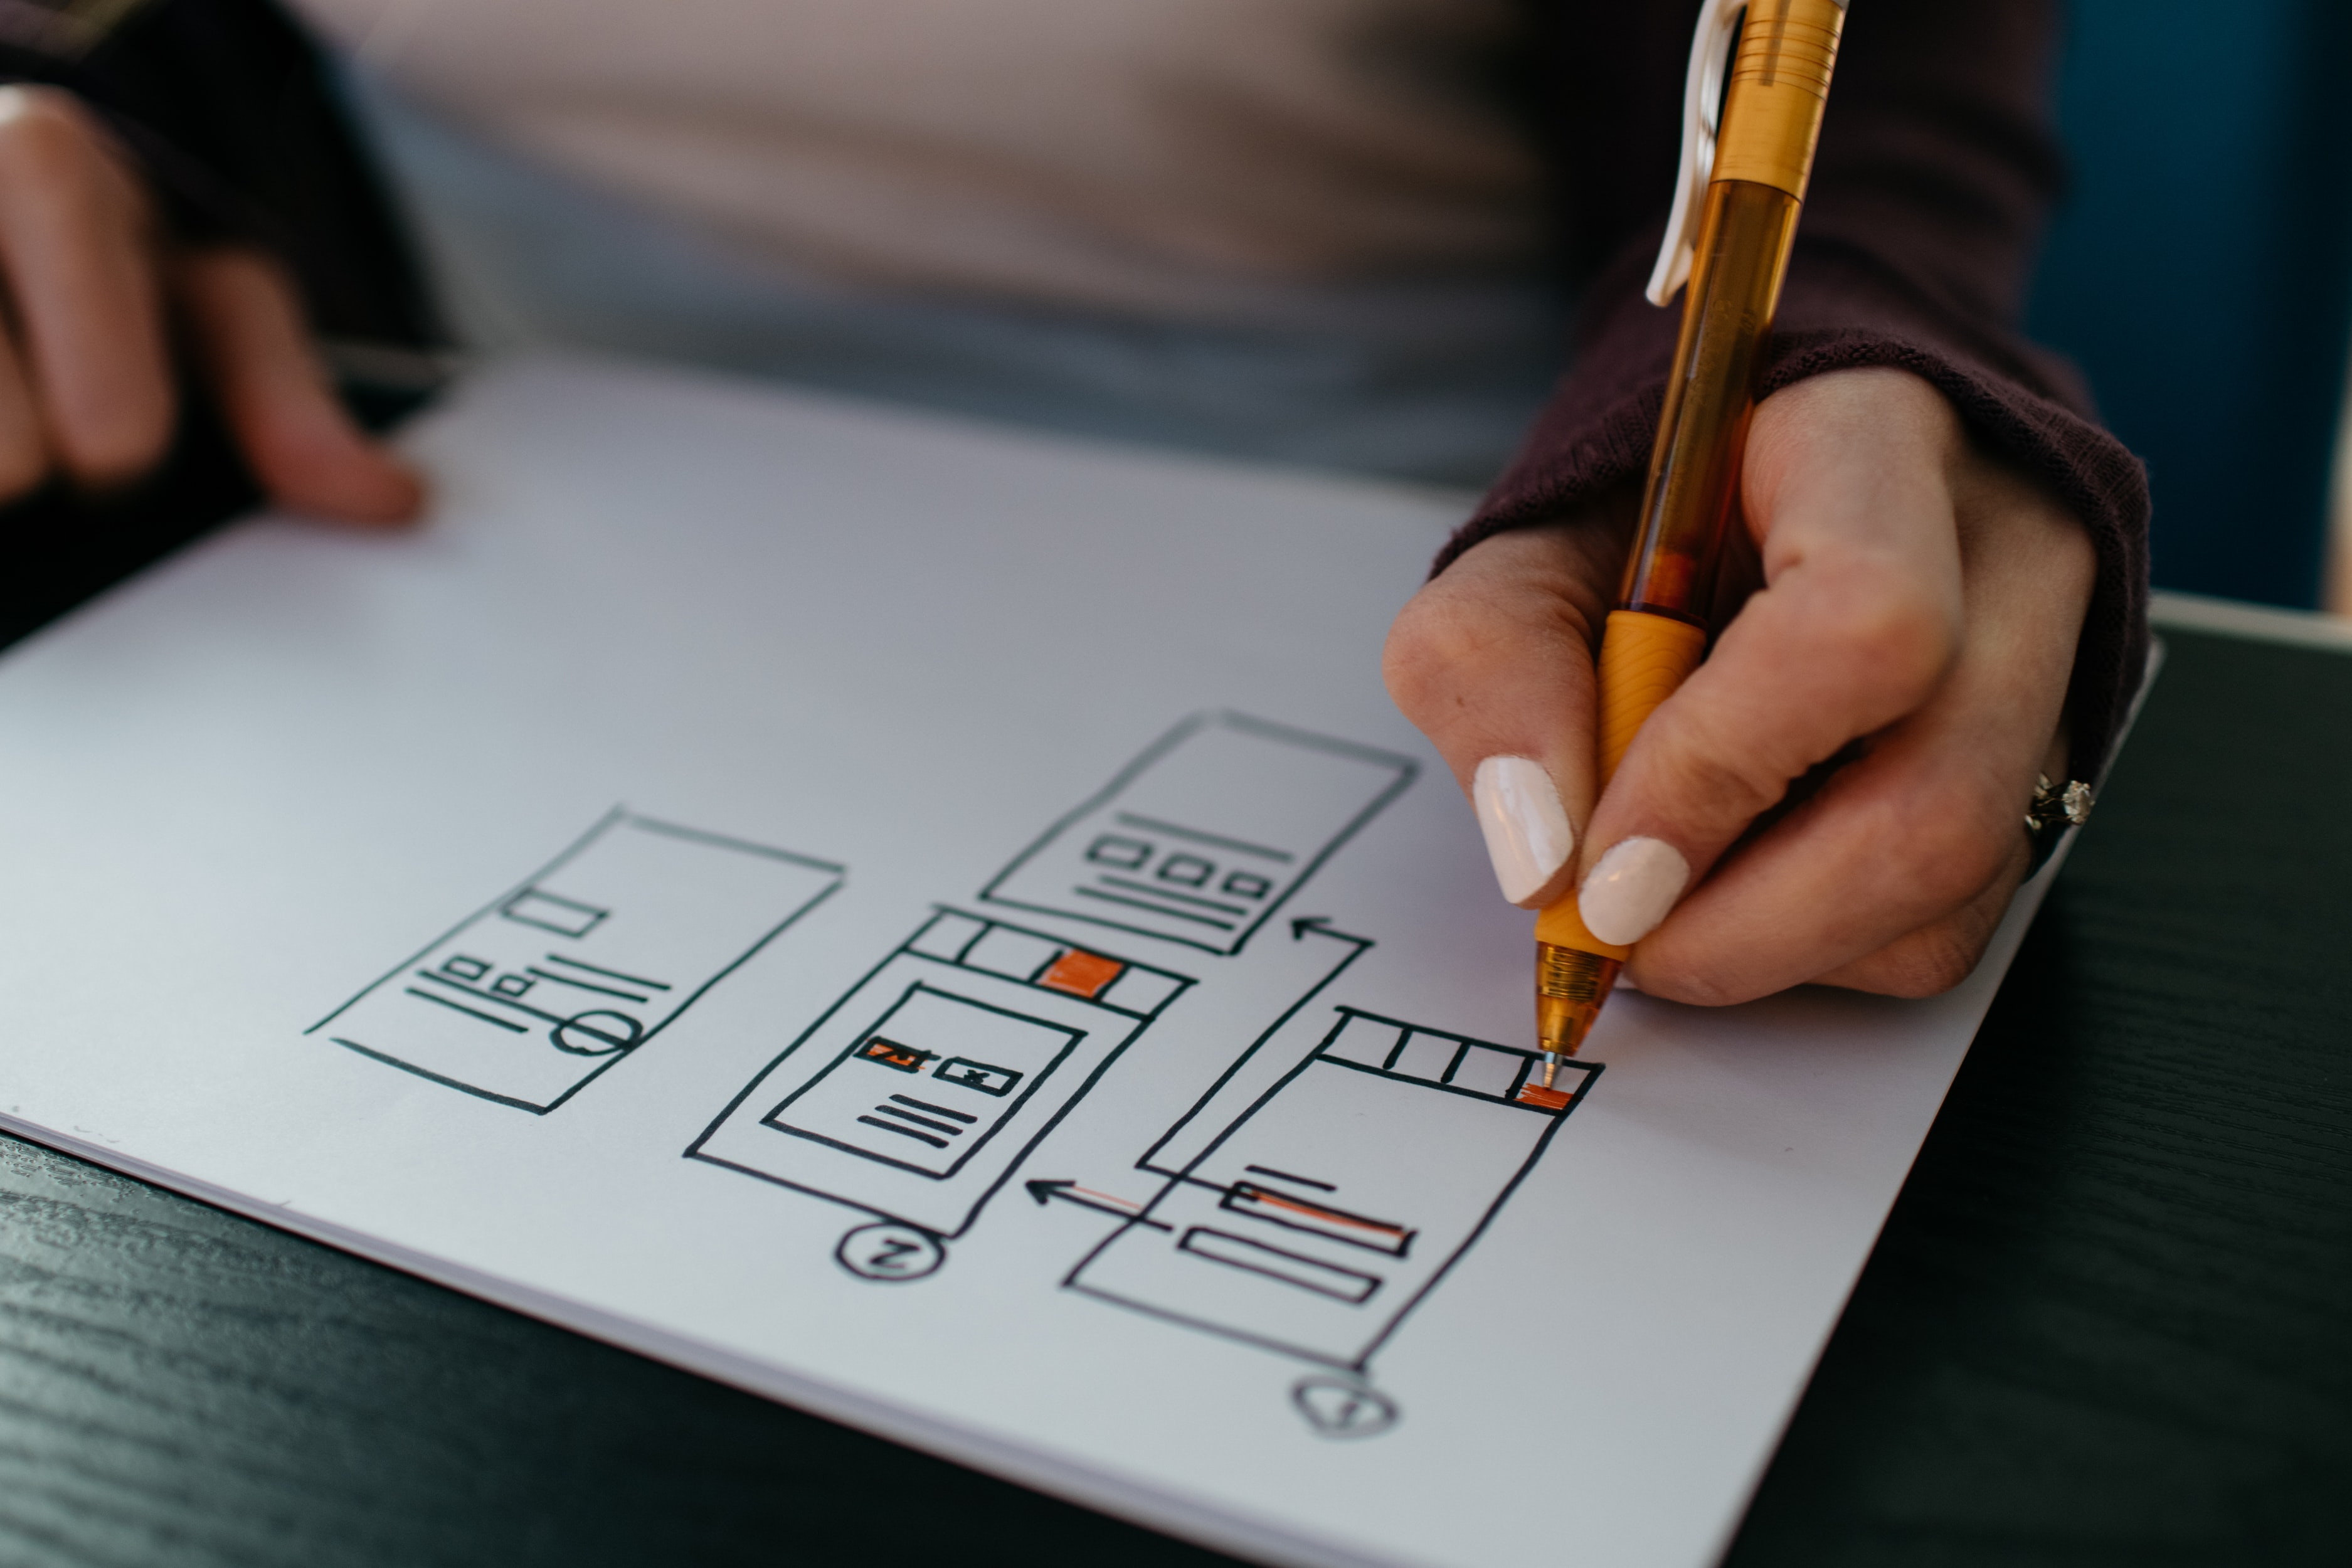 Process and interface design